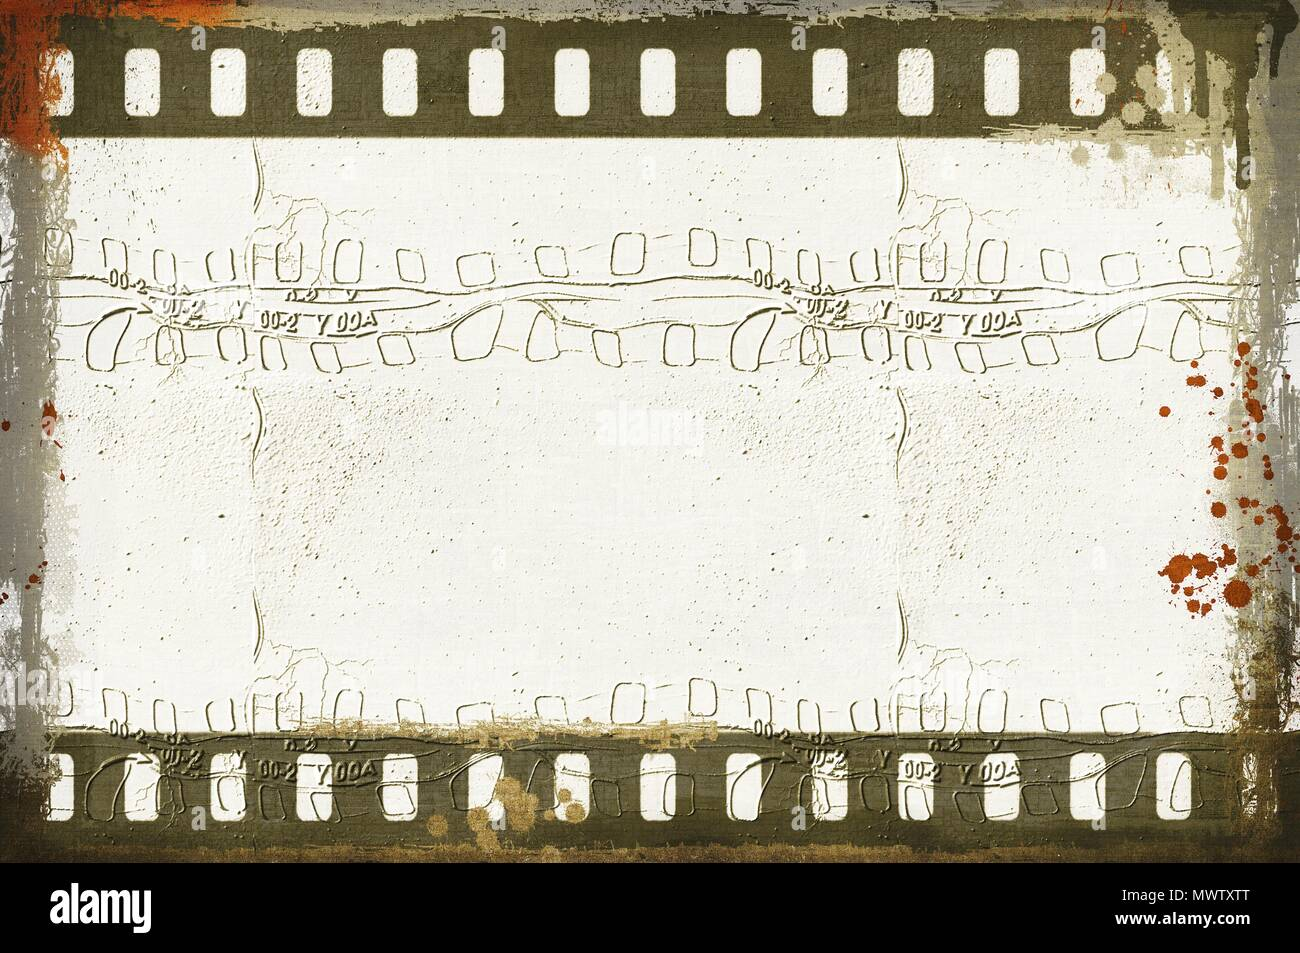 Grunge dripping film strip frame in sepia tones. Stock Photo